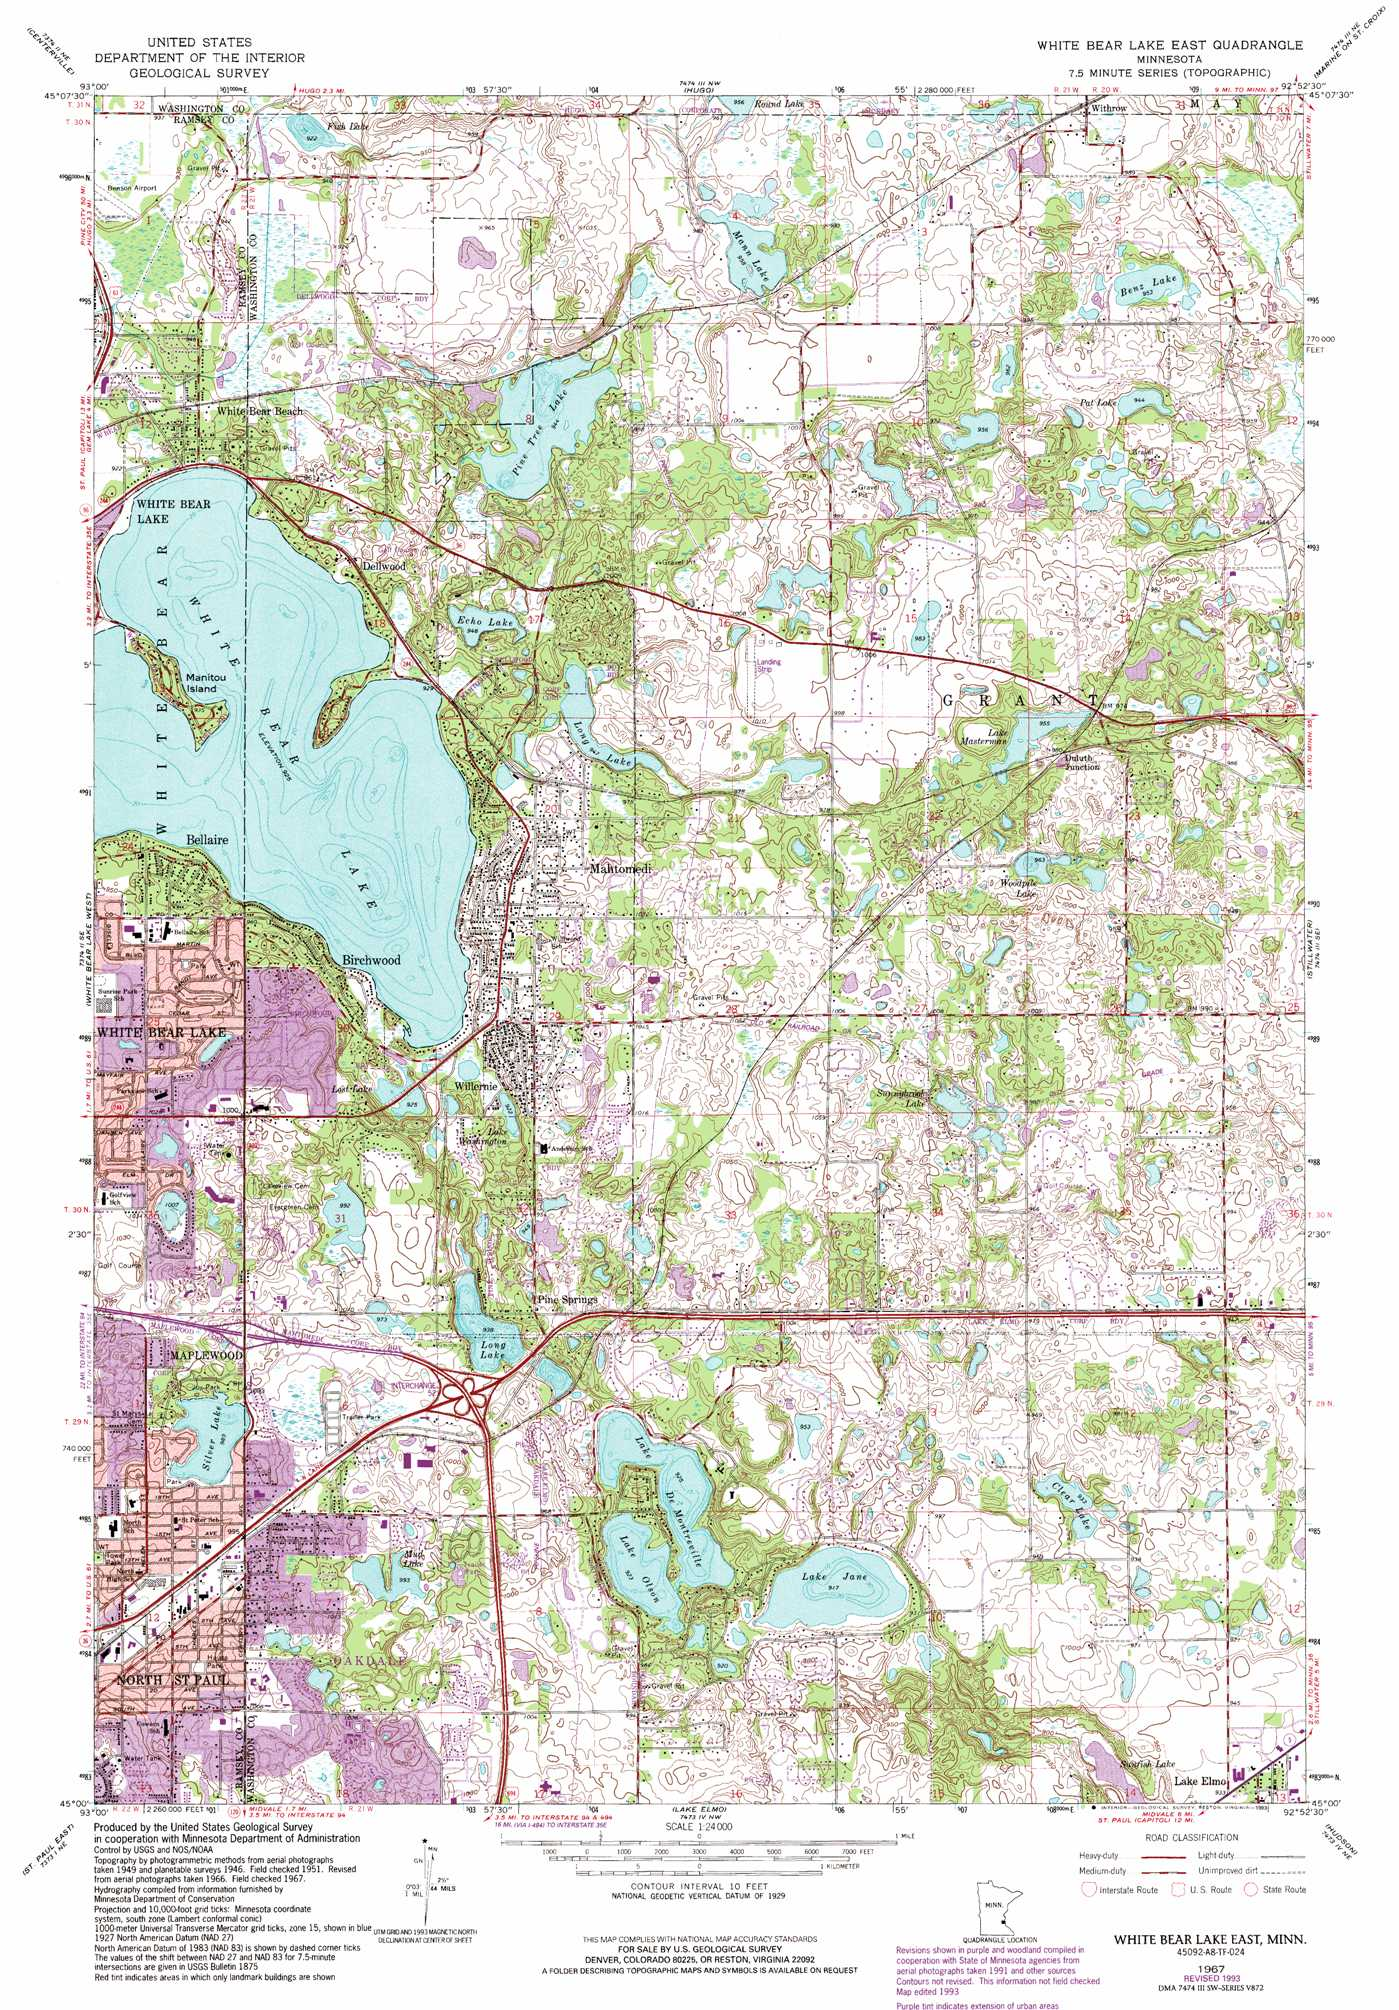 White Bear Lake East topographic map, MN - USGS Topo Quad ... on lake contour maps, dnr lake maps, hume lake california hunting maps, texoma topography maps, national geographic maps, aerial lake maps, satellite lake maps, europe lake maps, tennessee river navigation chart maps, campground site maps, gps lake maps, navionics lake maps, usgs lake maps, best 2014 lake fork tx maps,